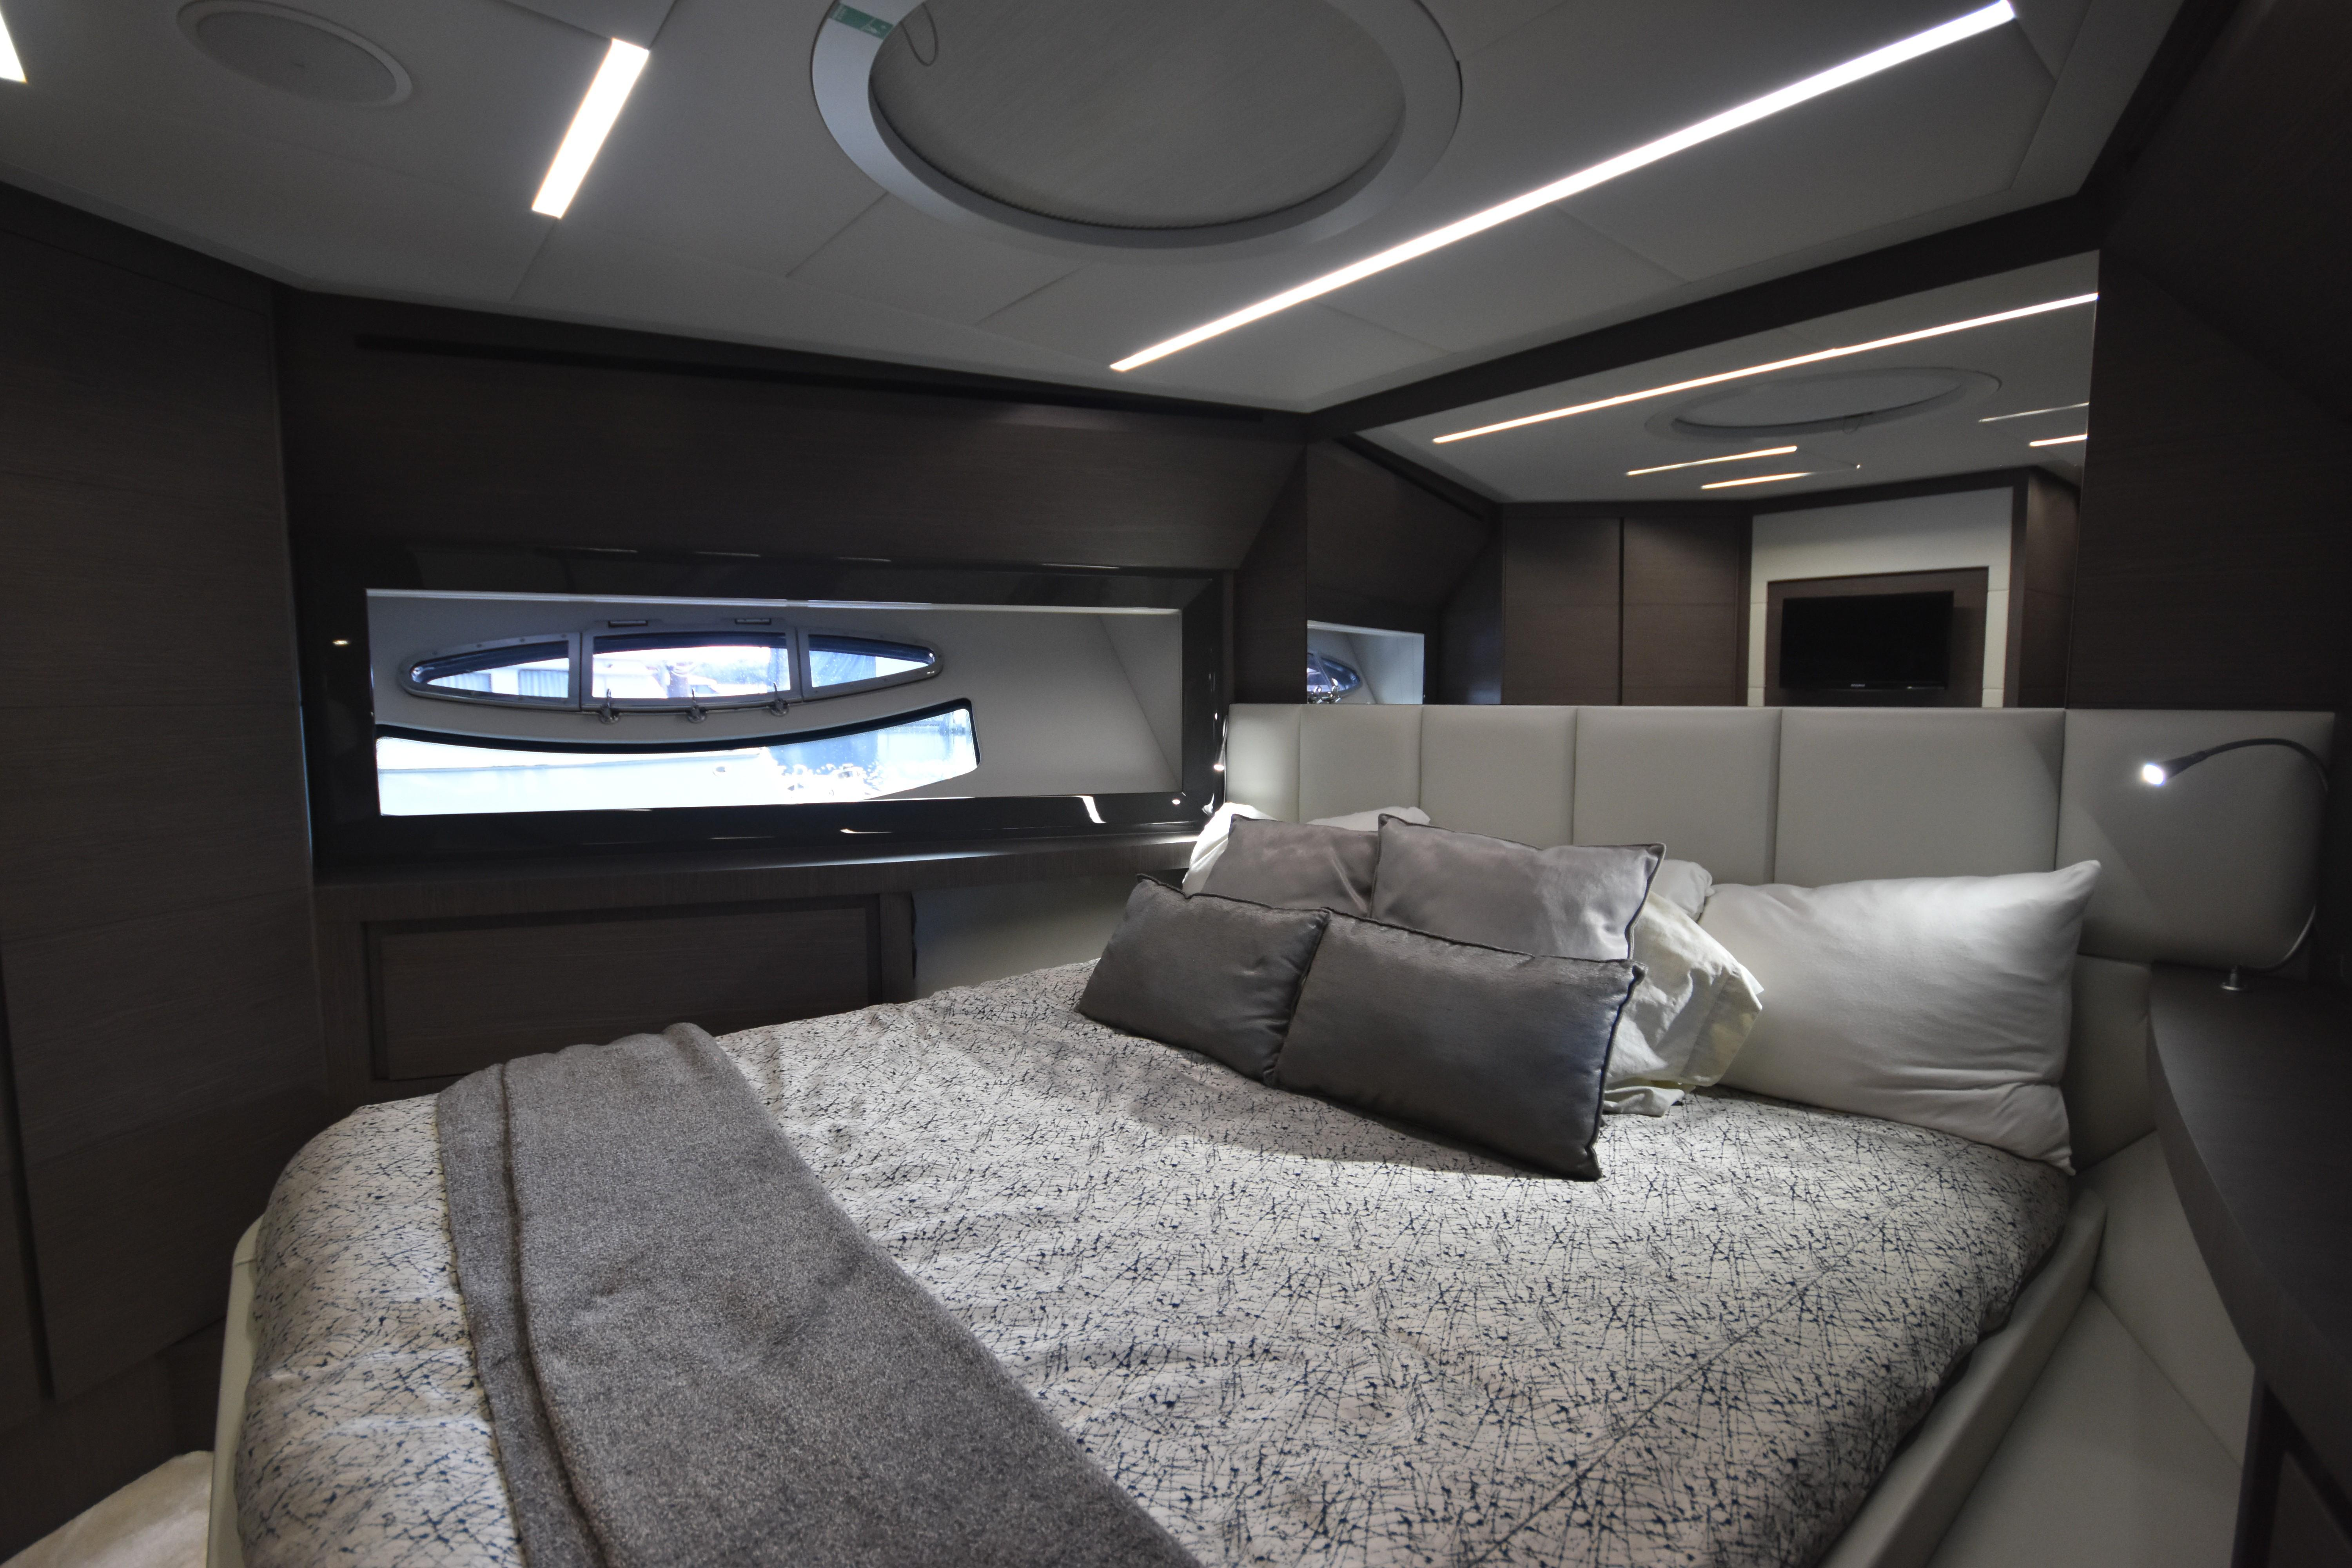 2017 Pershing 74, Sultan VIP Stateroom